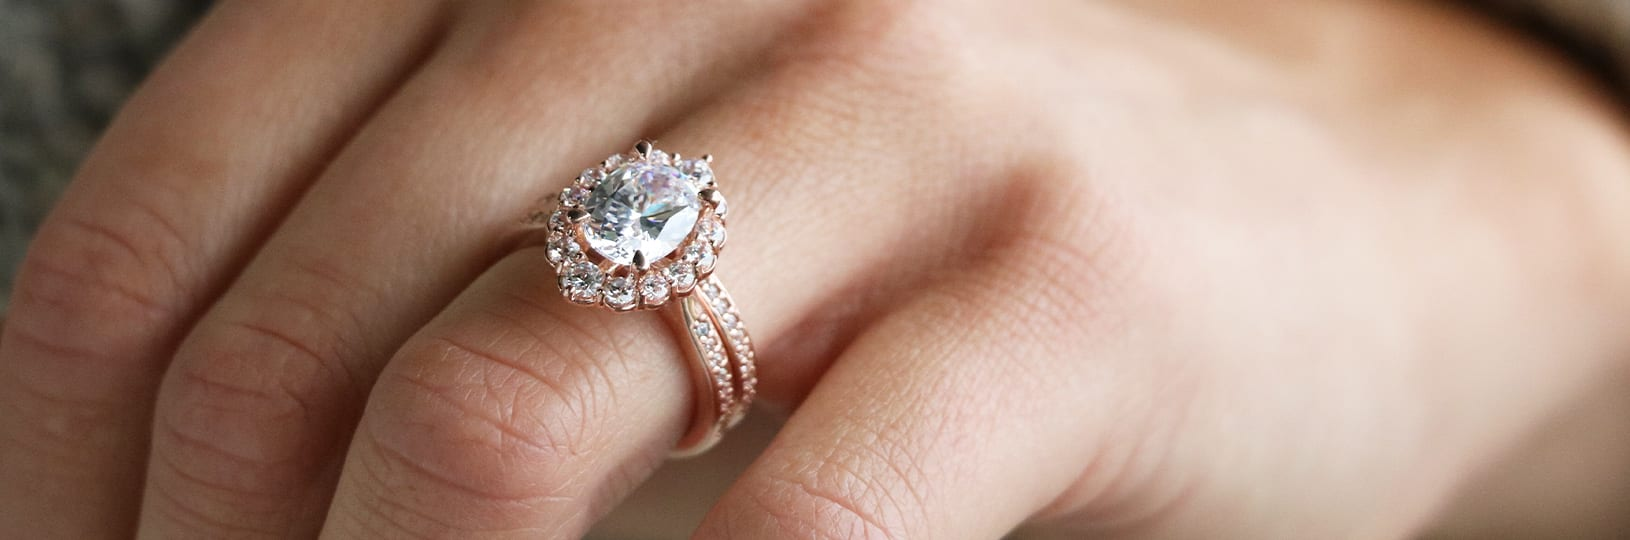 A halo engagement ring